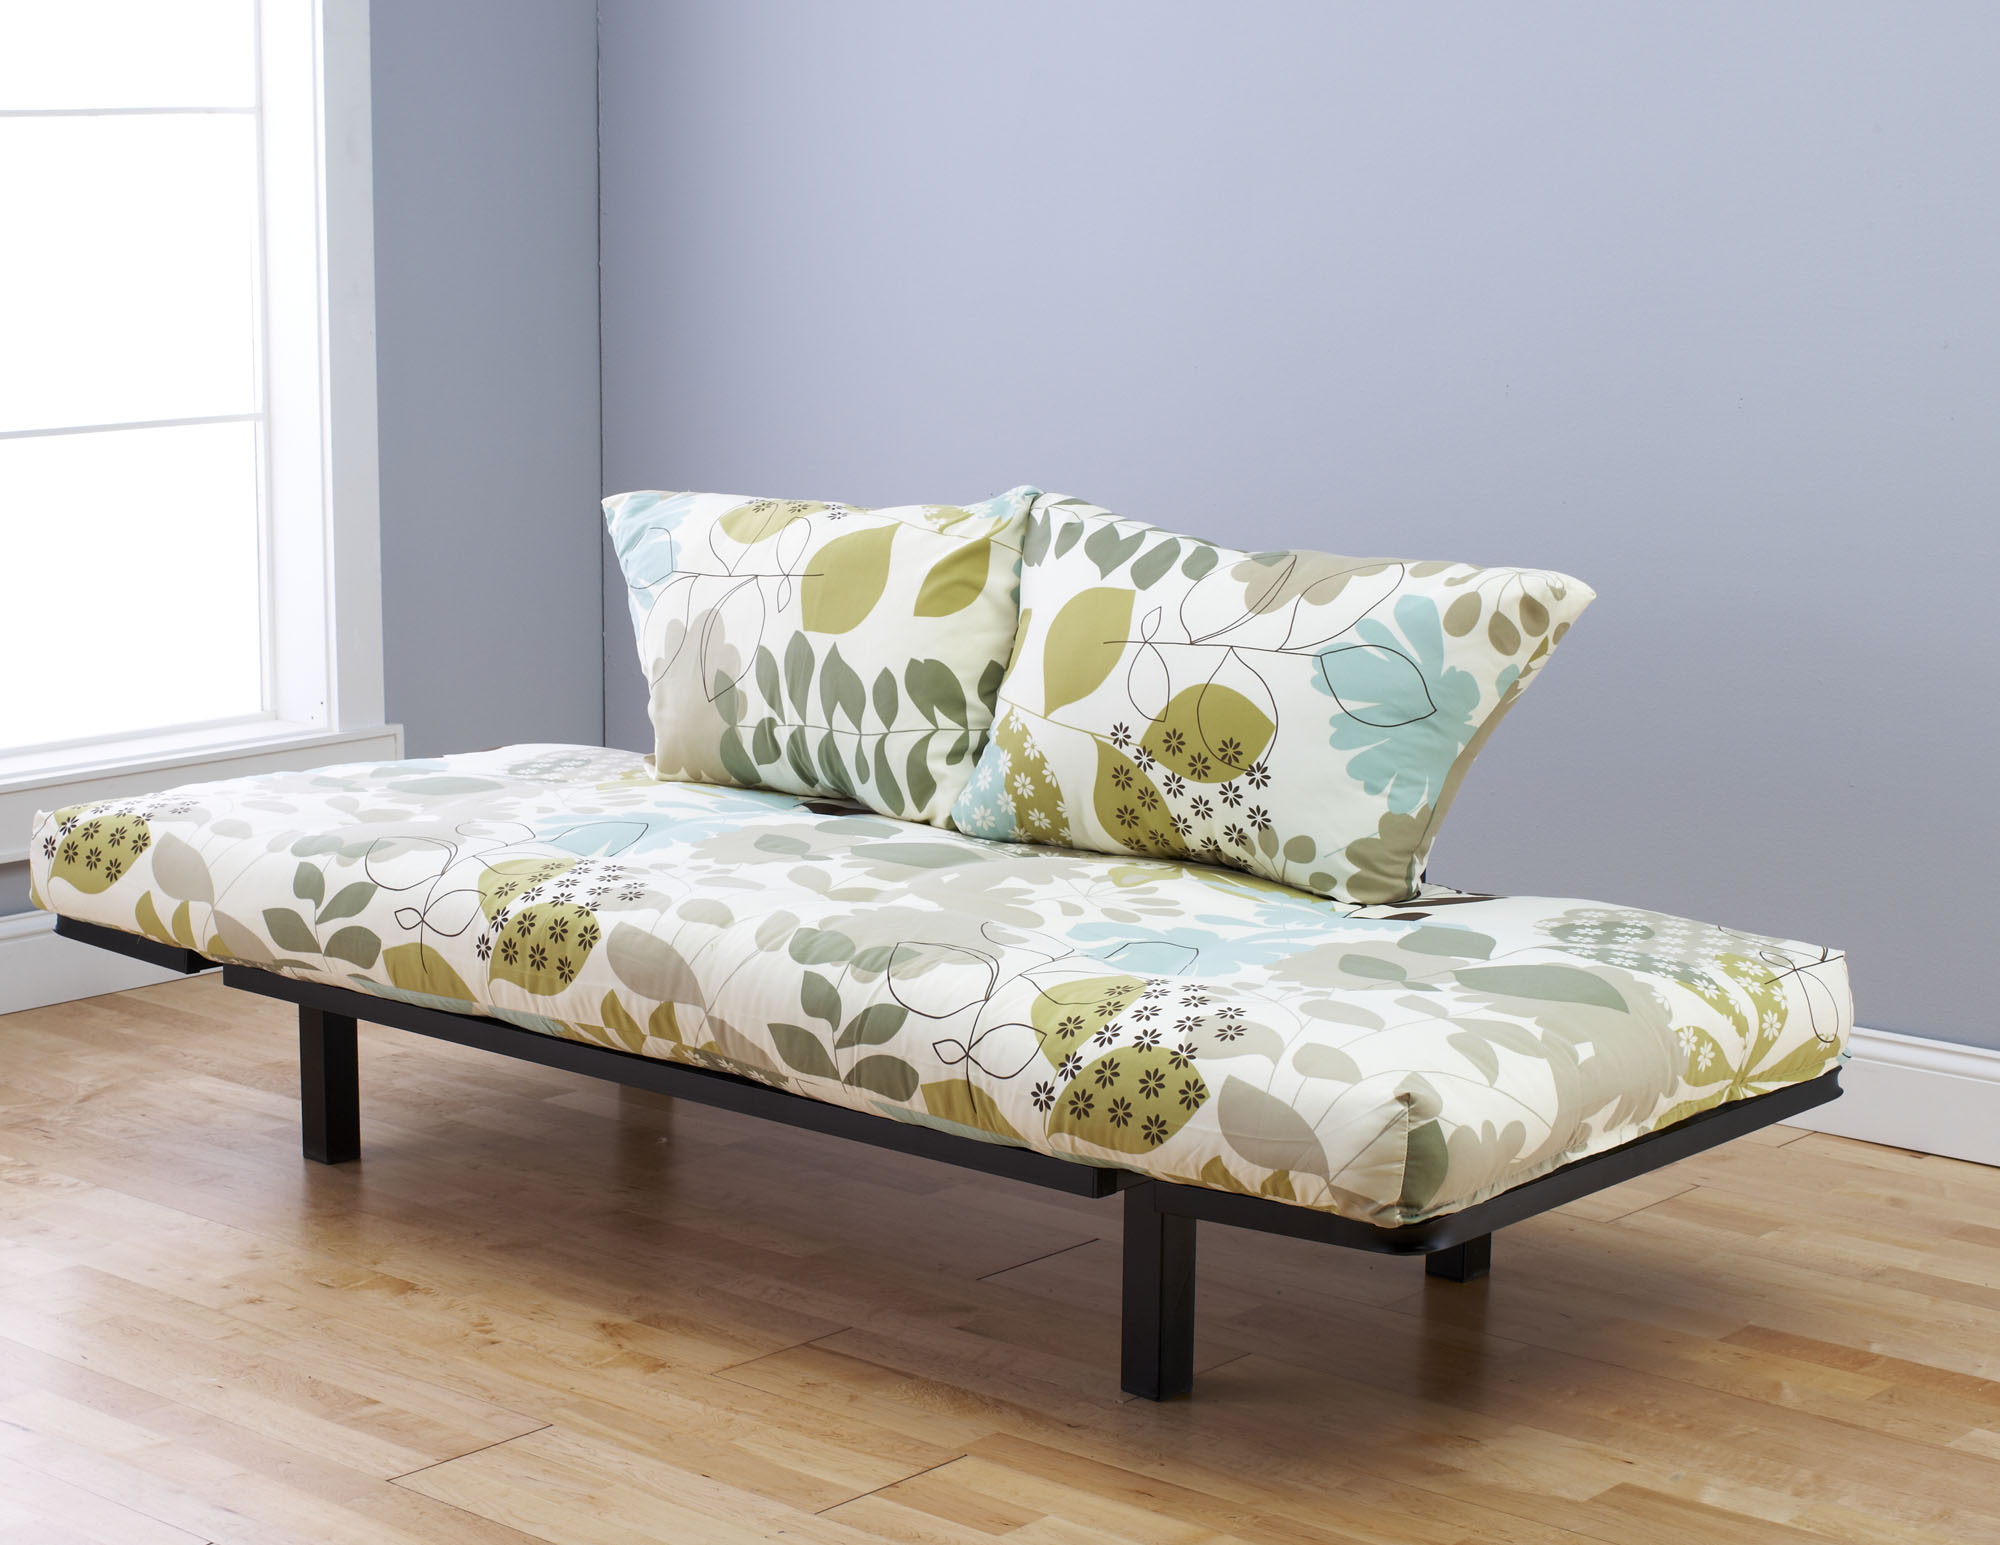 Ely Futon Daybed Lounger With Mattress English Garden By Kodiak